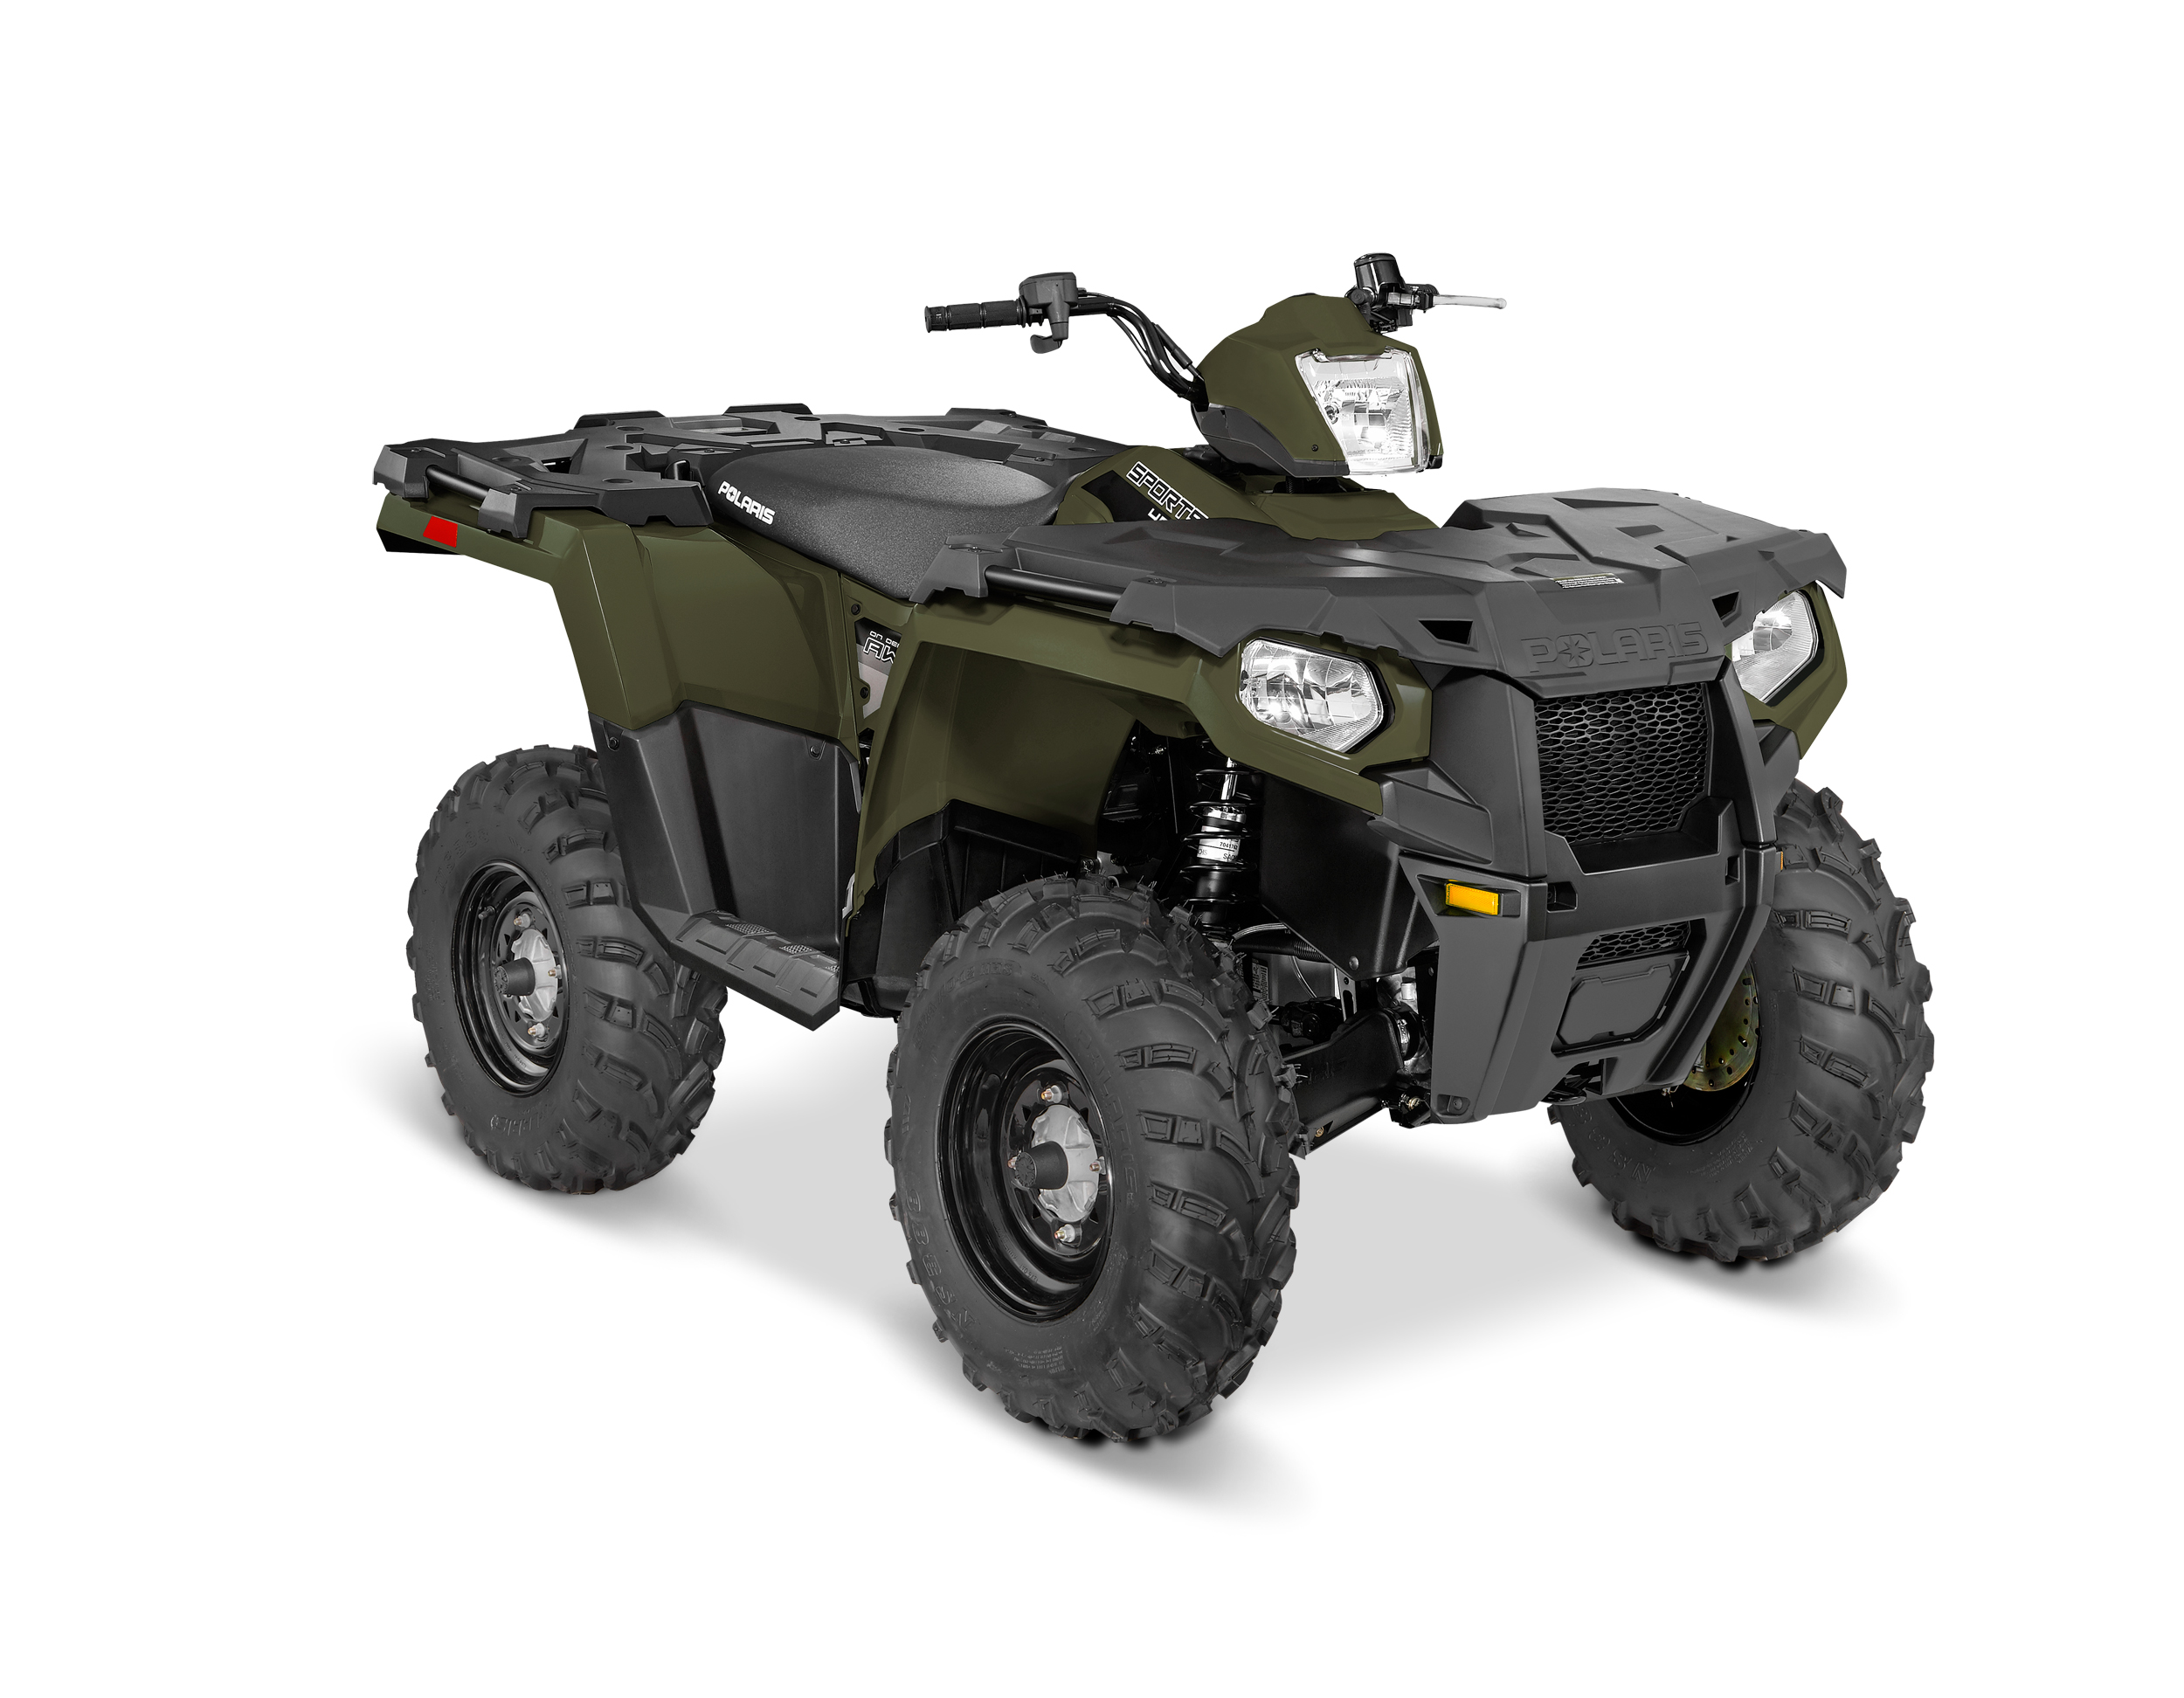 2016-sportsman-450-ho-sage-green-3q